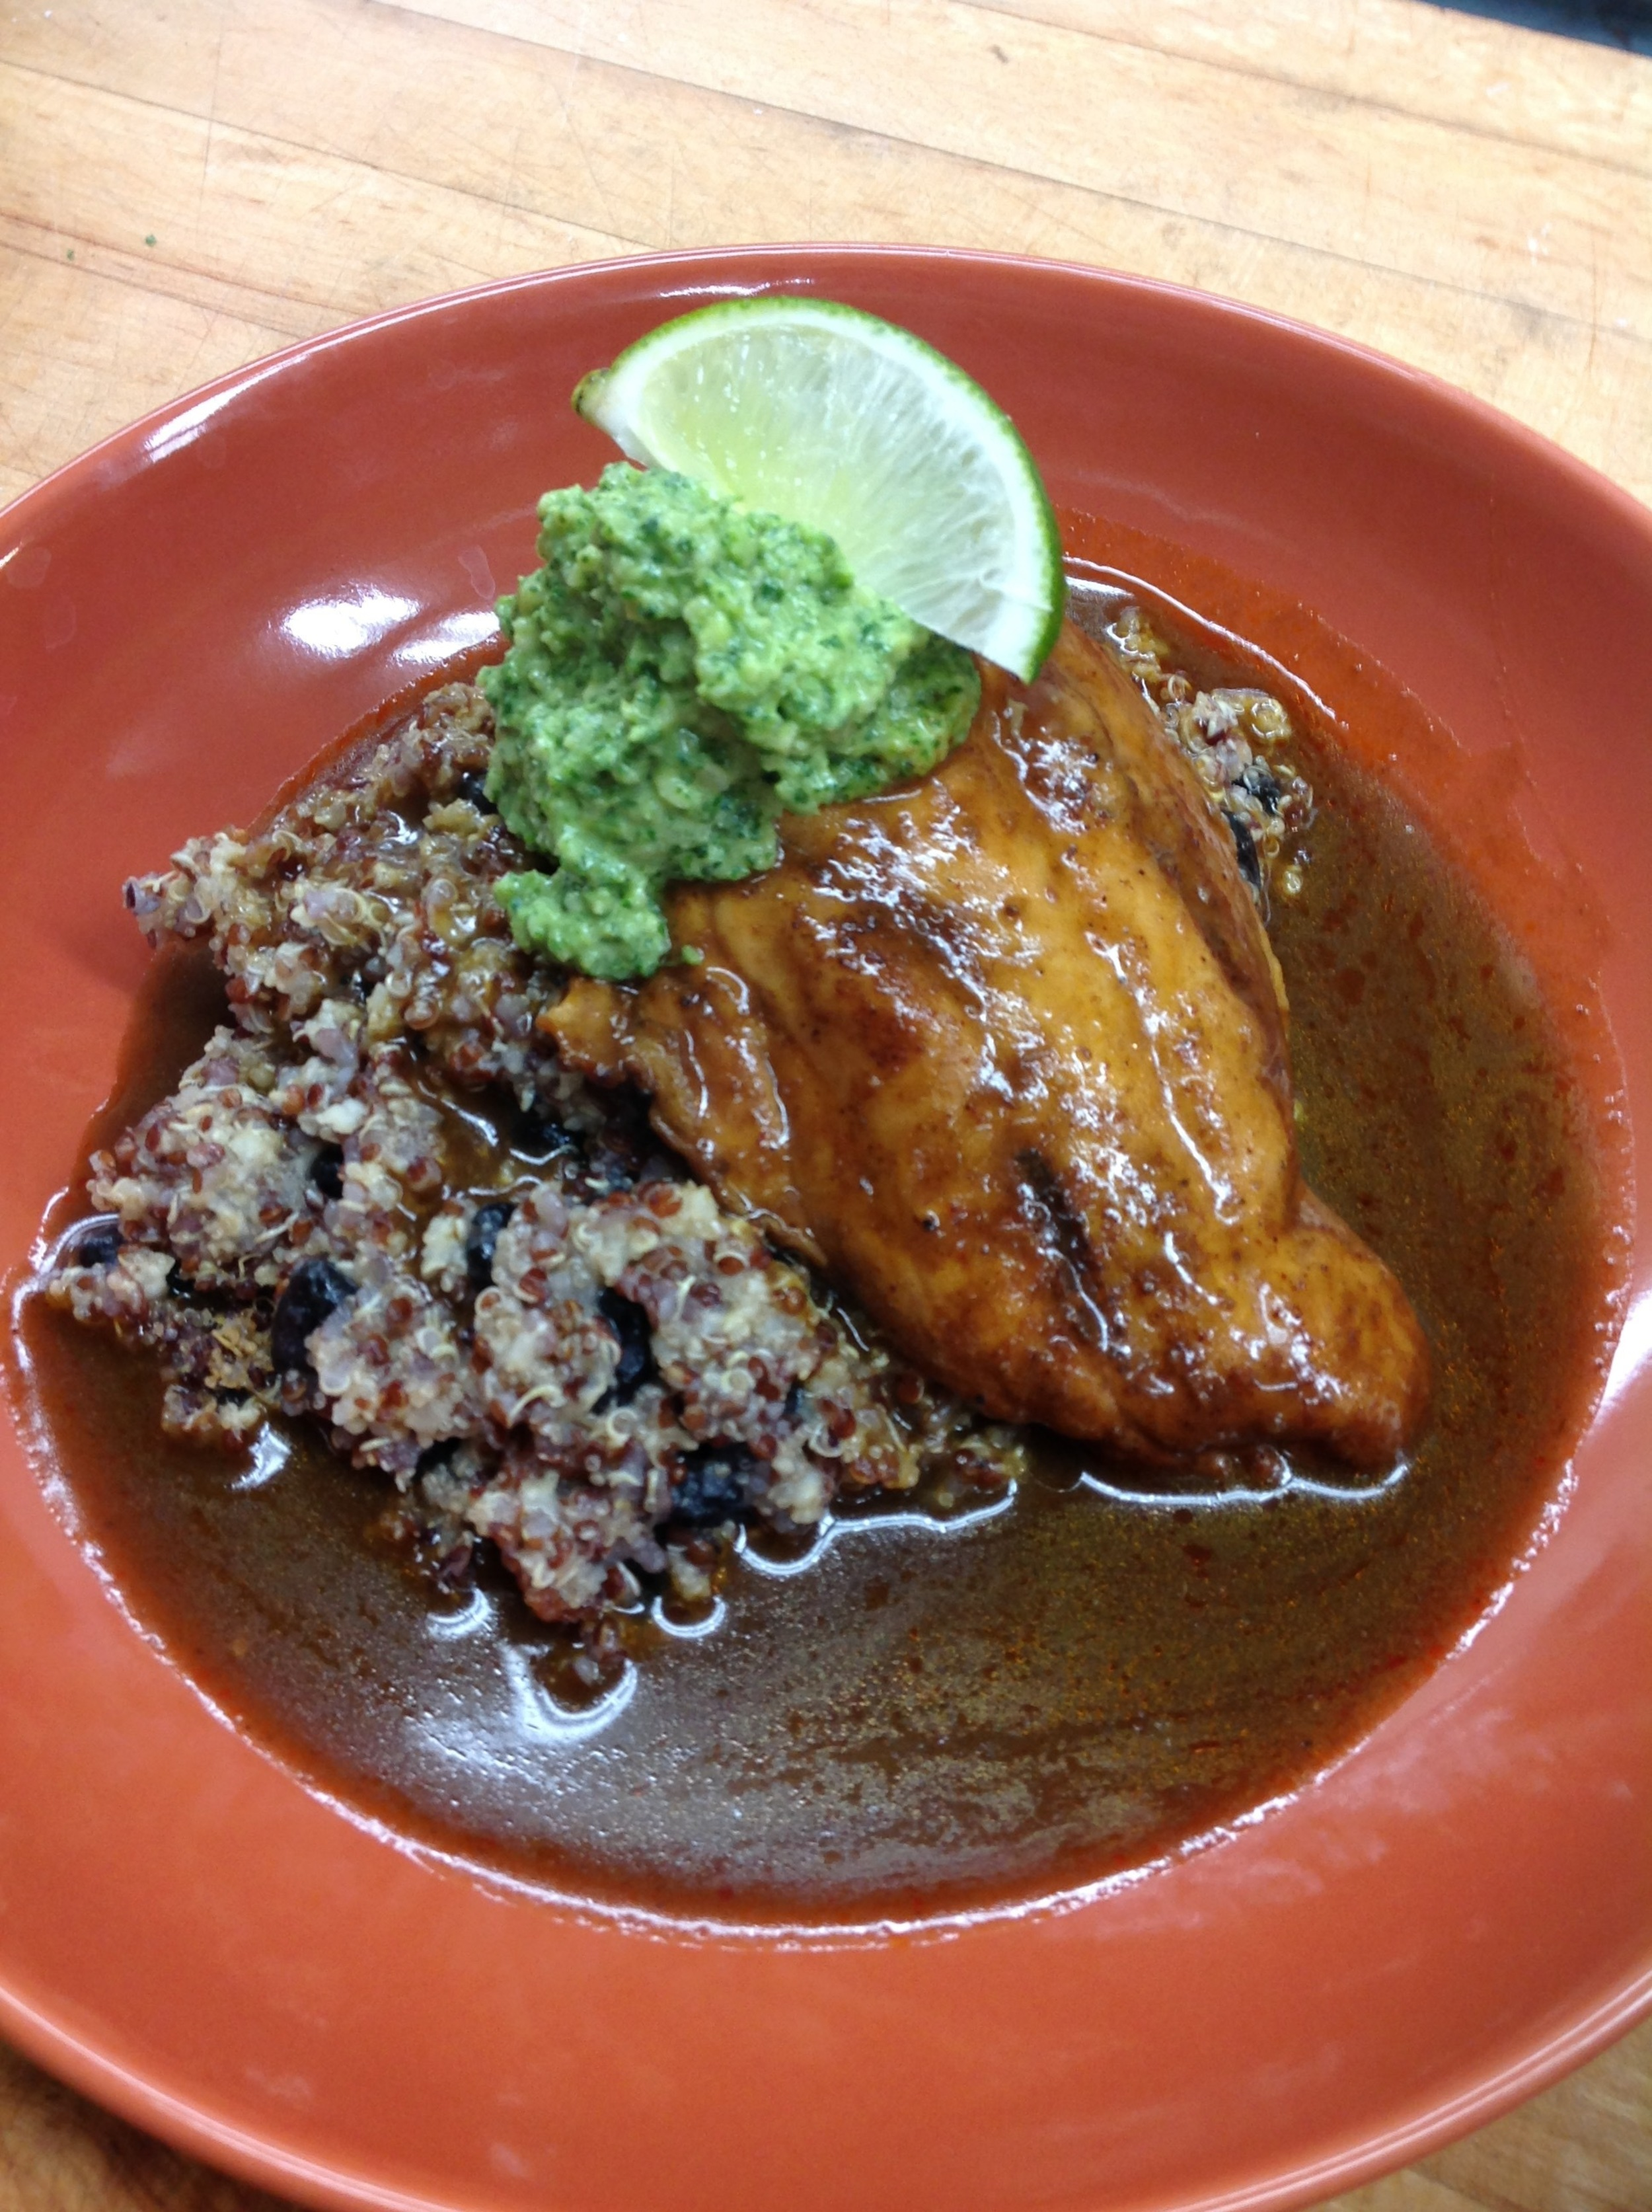 Slow roasted chicken with black beans